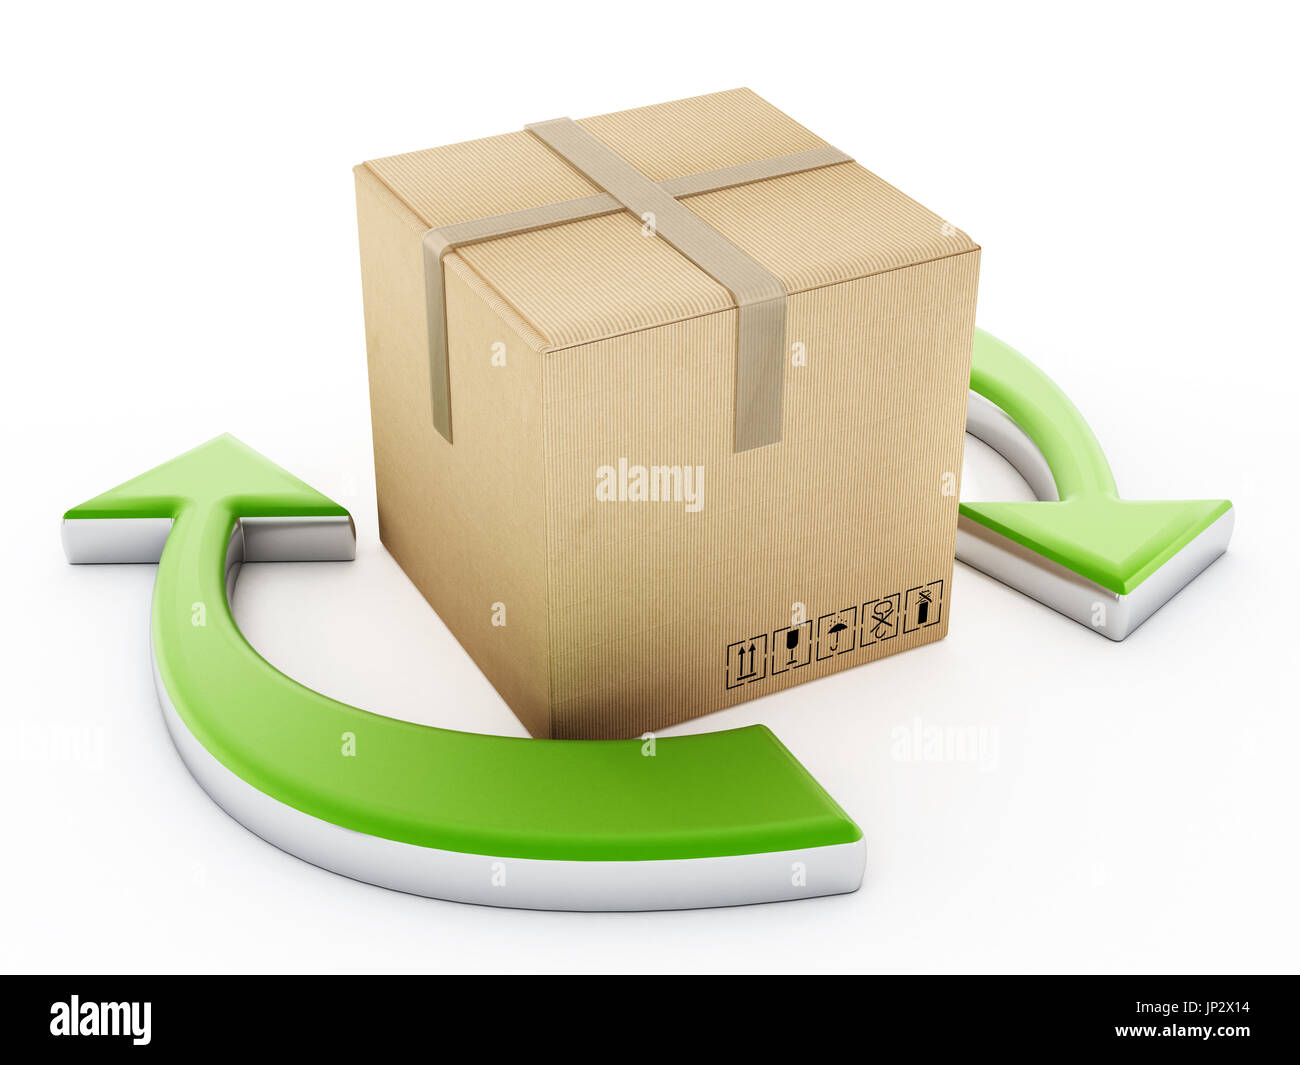 Cardboard box standing among the recycle arrows. 3D illustration. - Stock Image